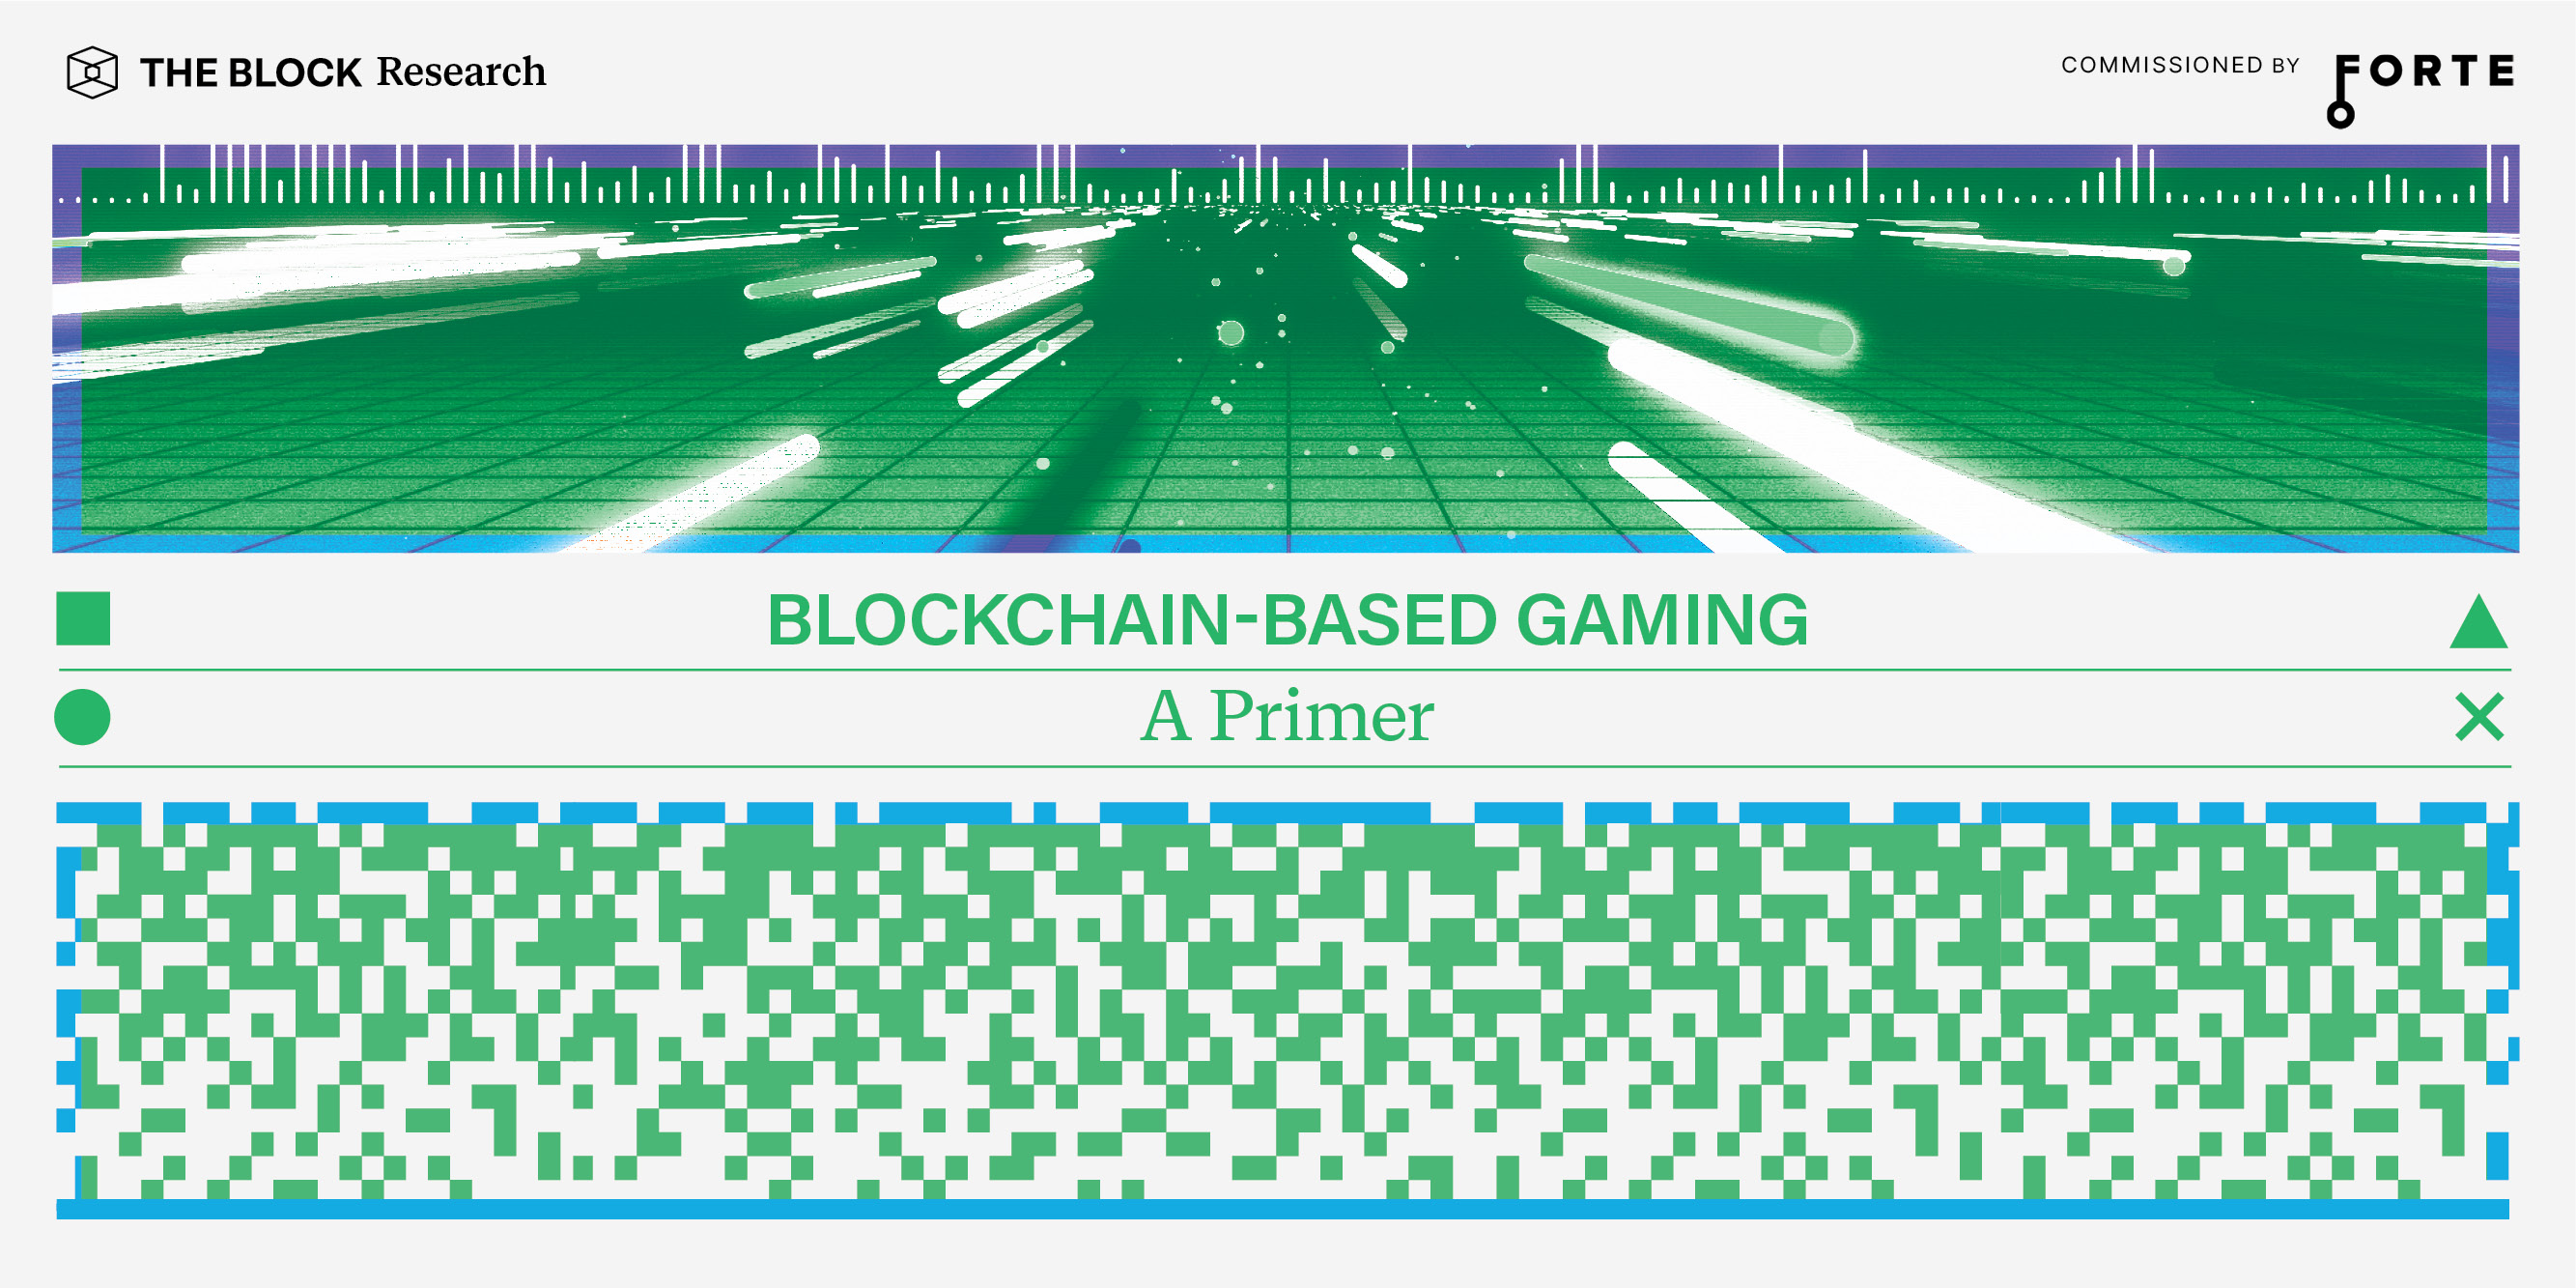 Blockchain-Based Gaming: A Primer — Brought to you by Forte